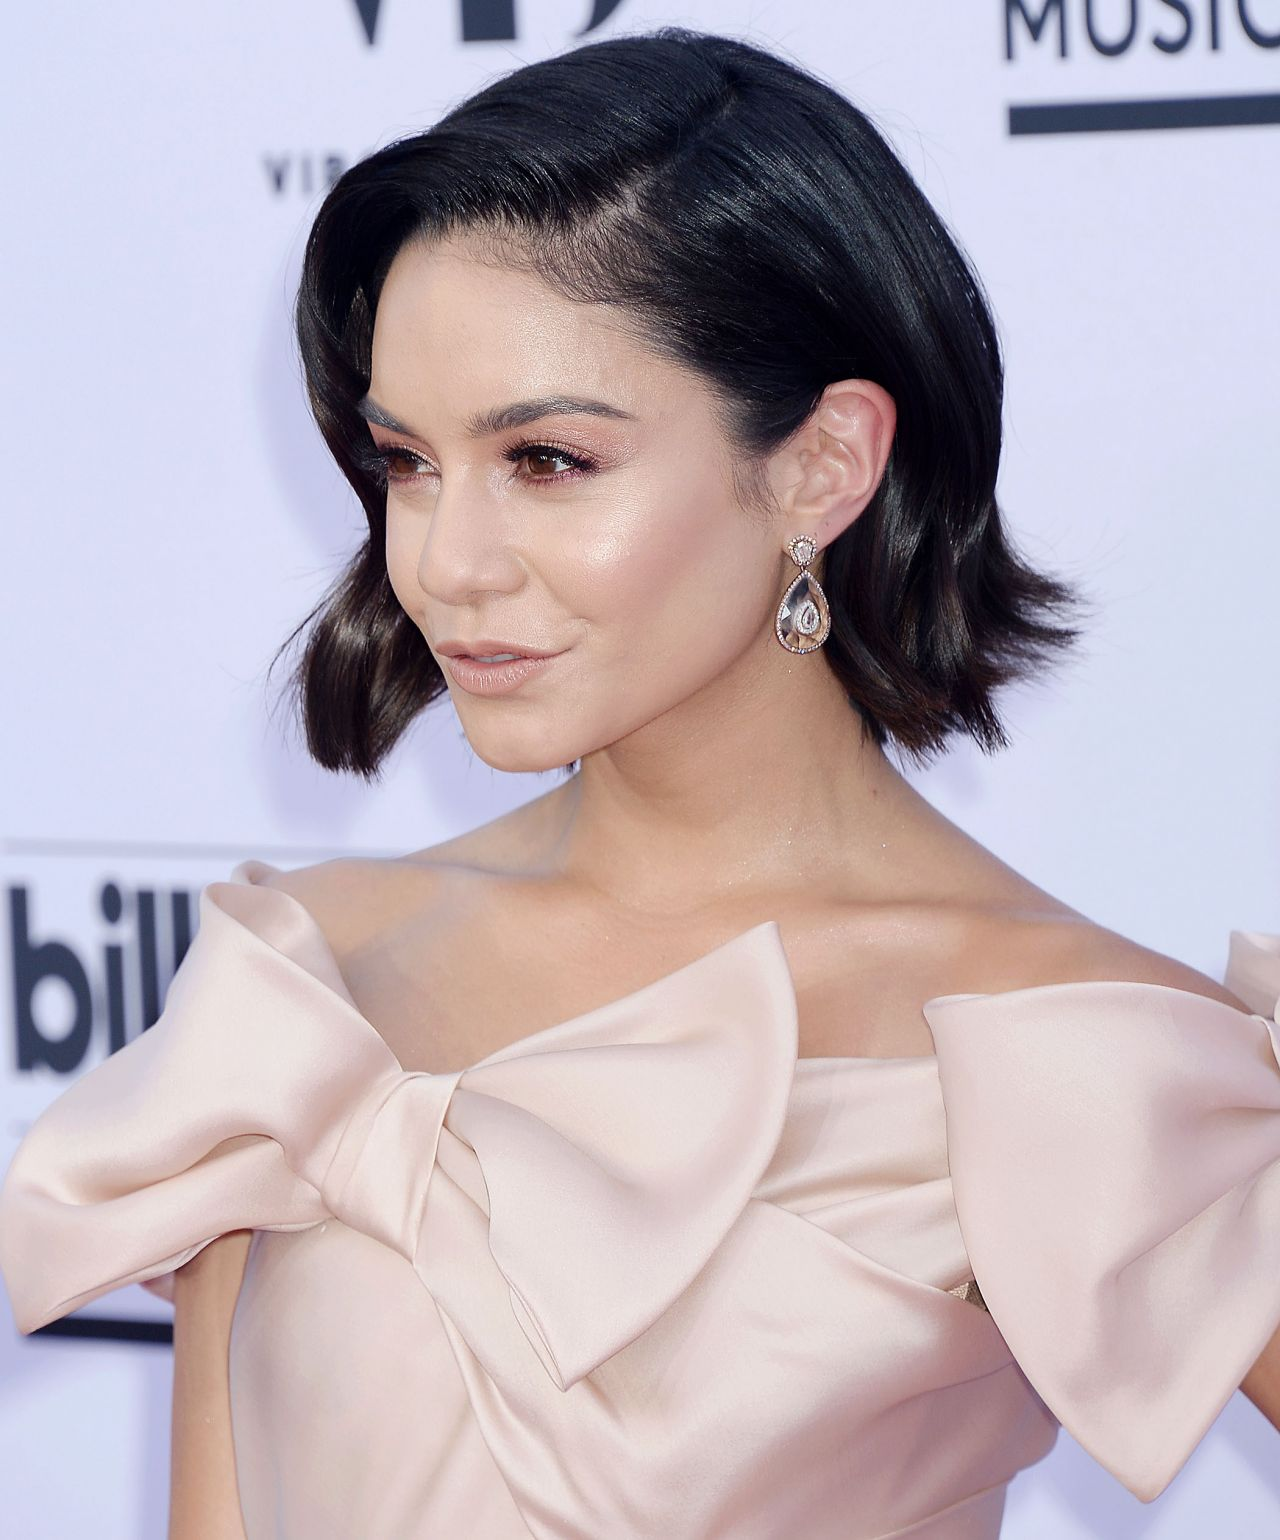 Vanessa Hudgens Billboard Music Awards In Las Vegas 05